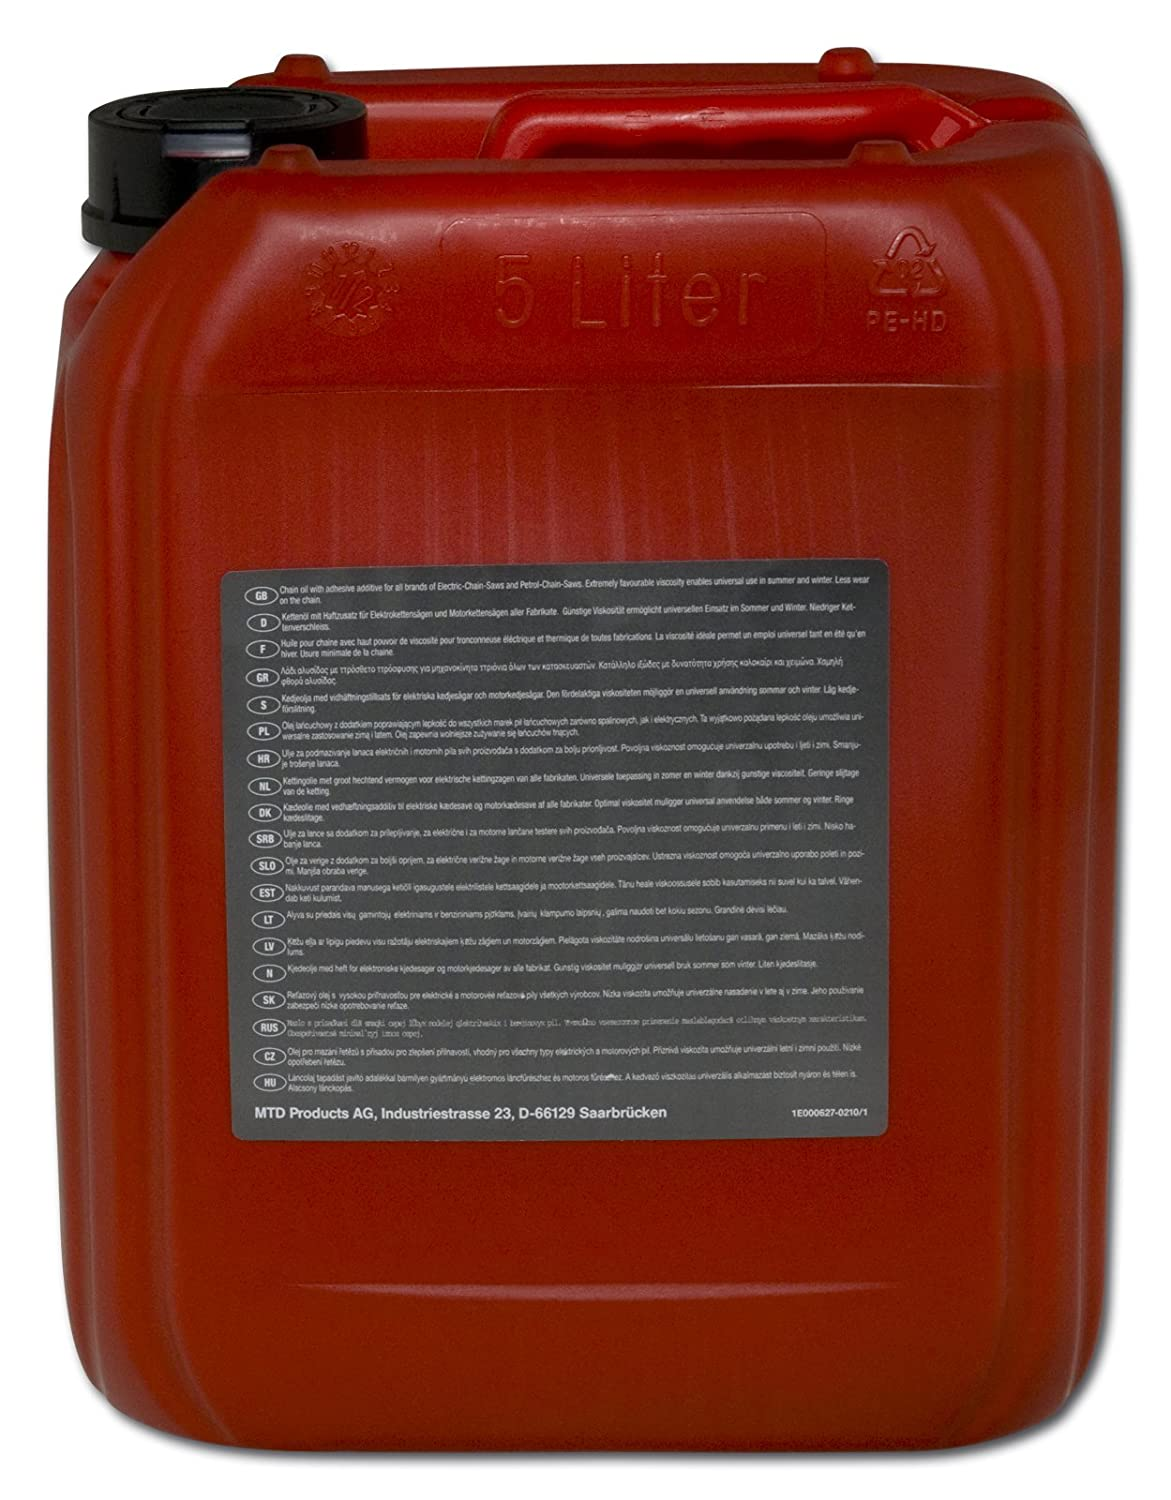 Arnold 6012-x 1-0042 MTD Chainsaw Oil 5 Litres Mineral 6012-X1-0042